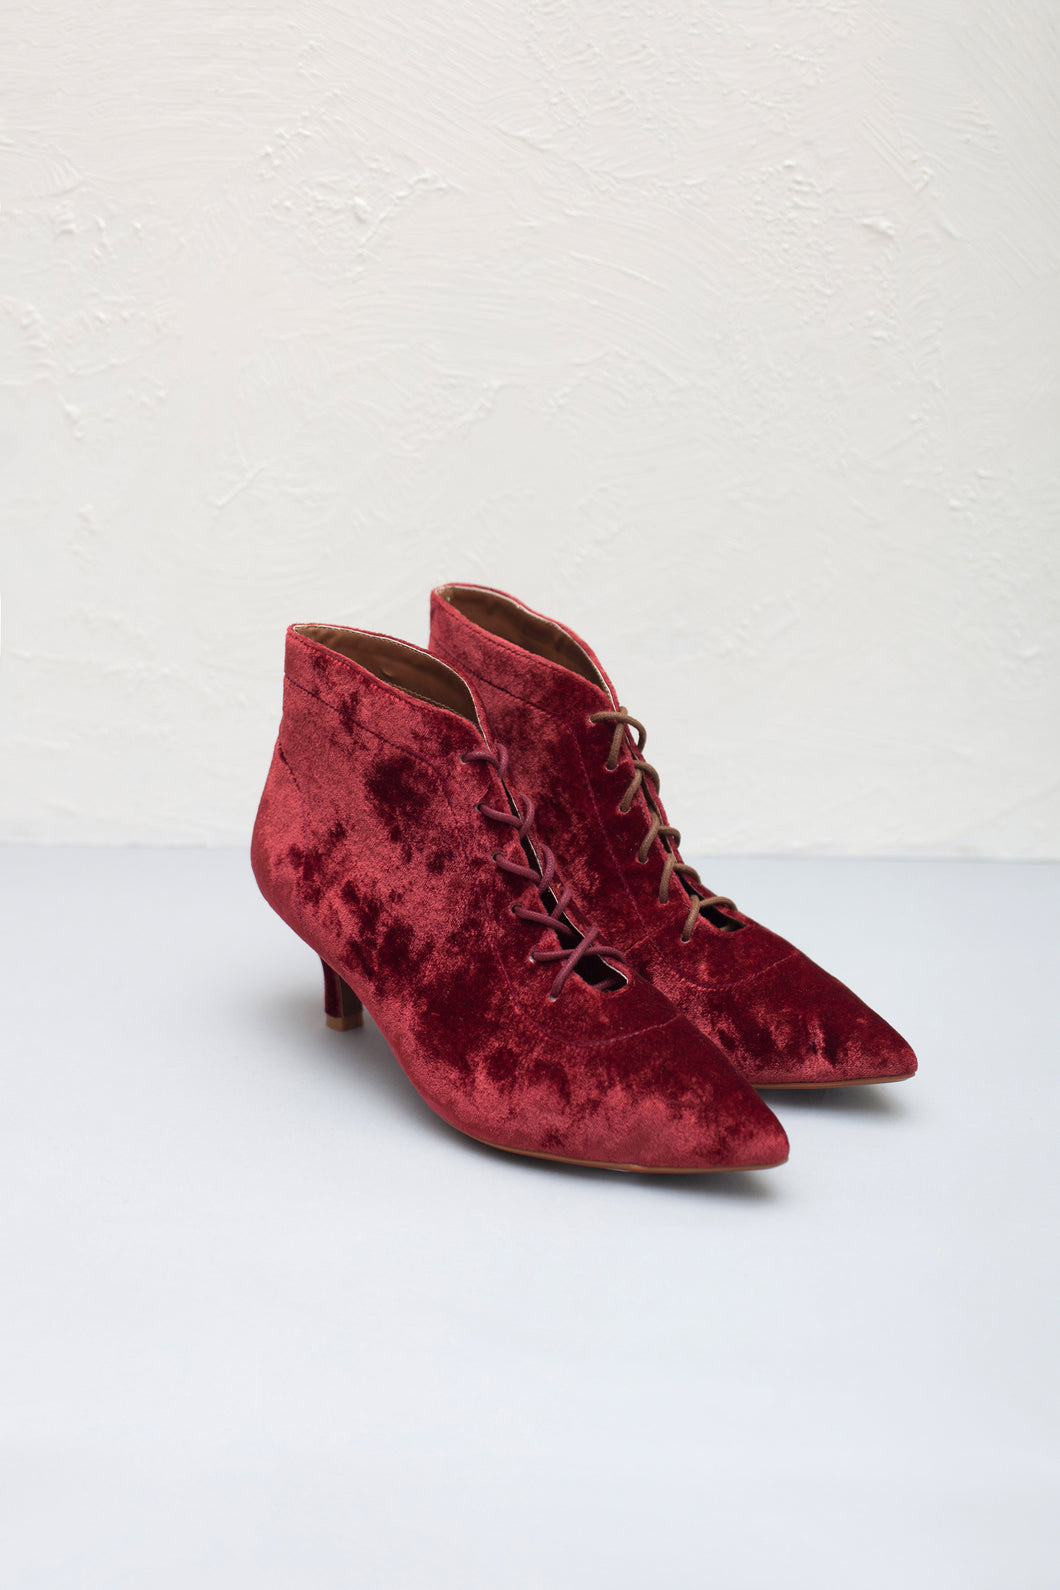 Kitty dark red velvet lace up kitten heel ankle boots by Miss L Fire. Vegetarian friendly boots.